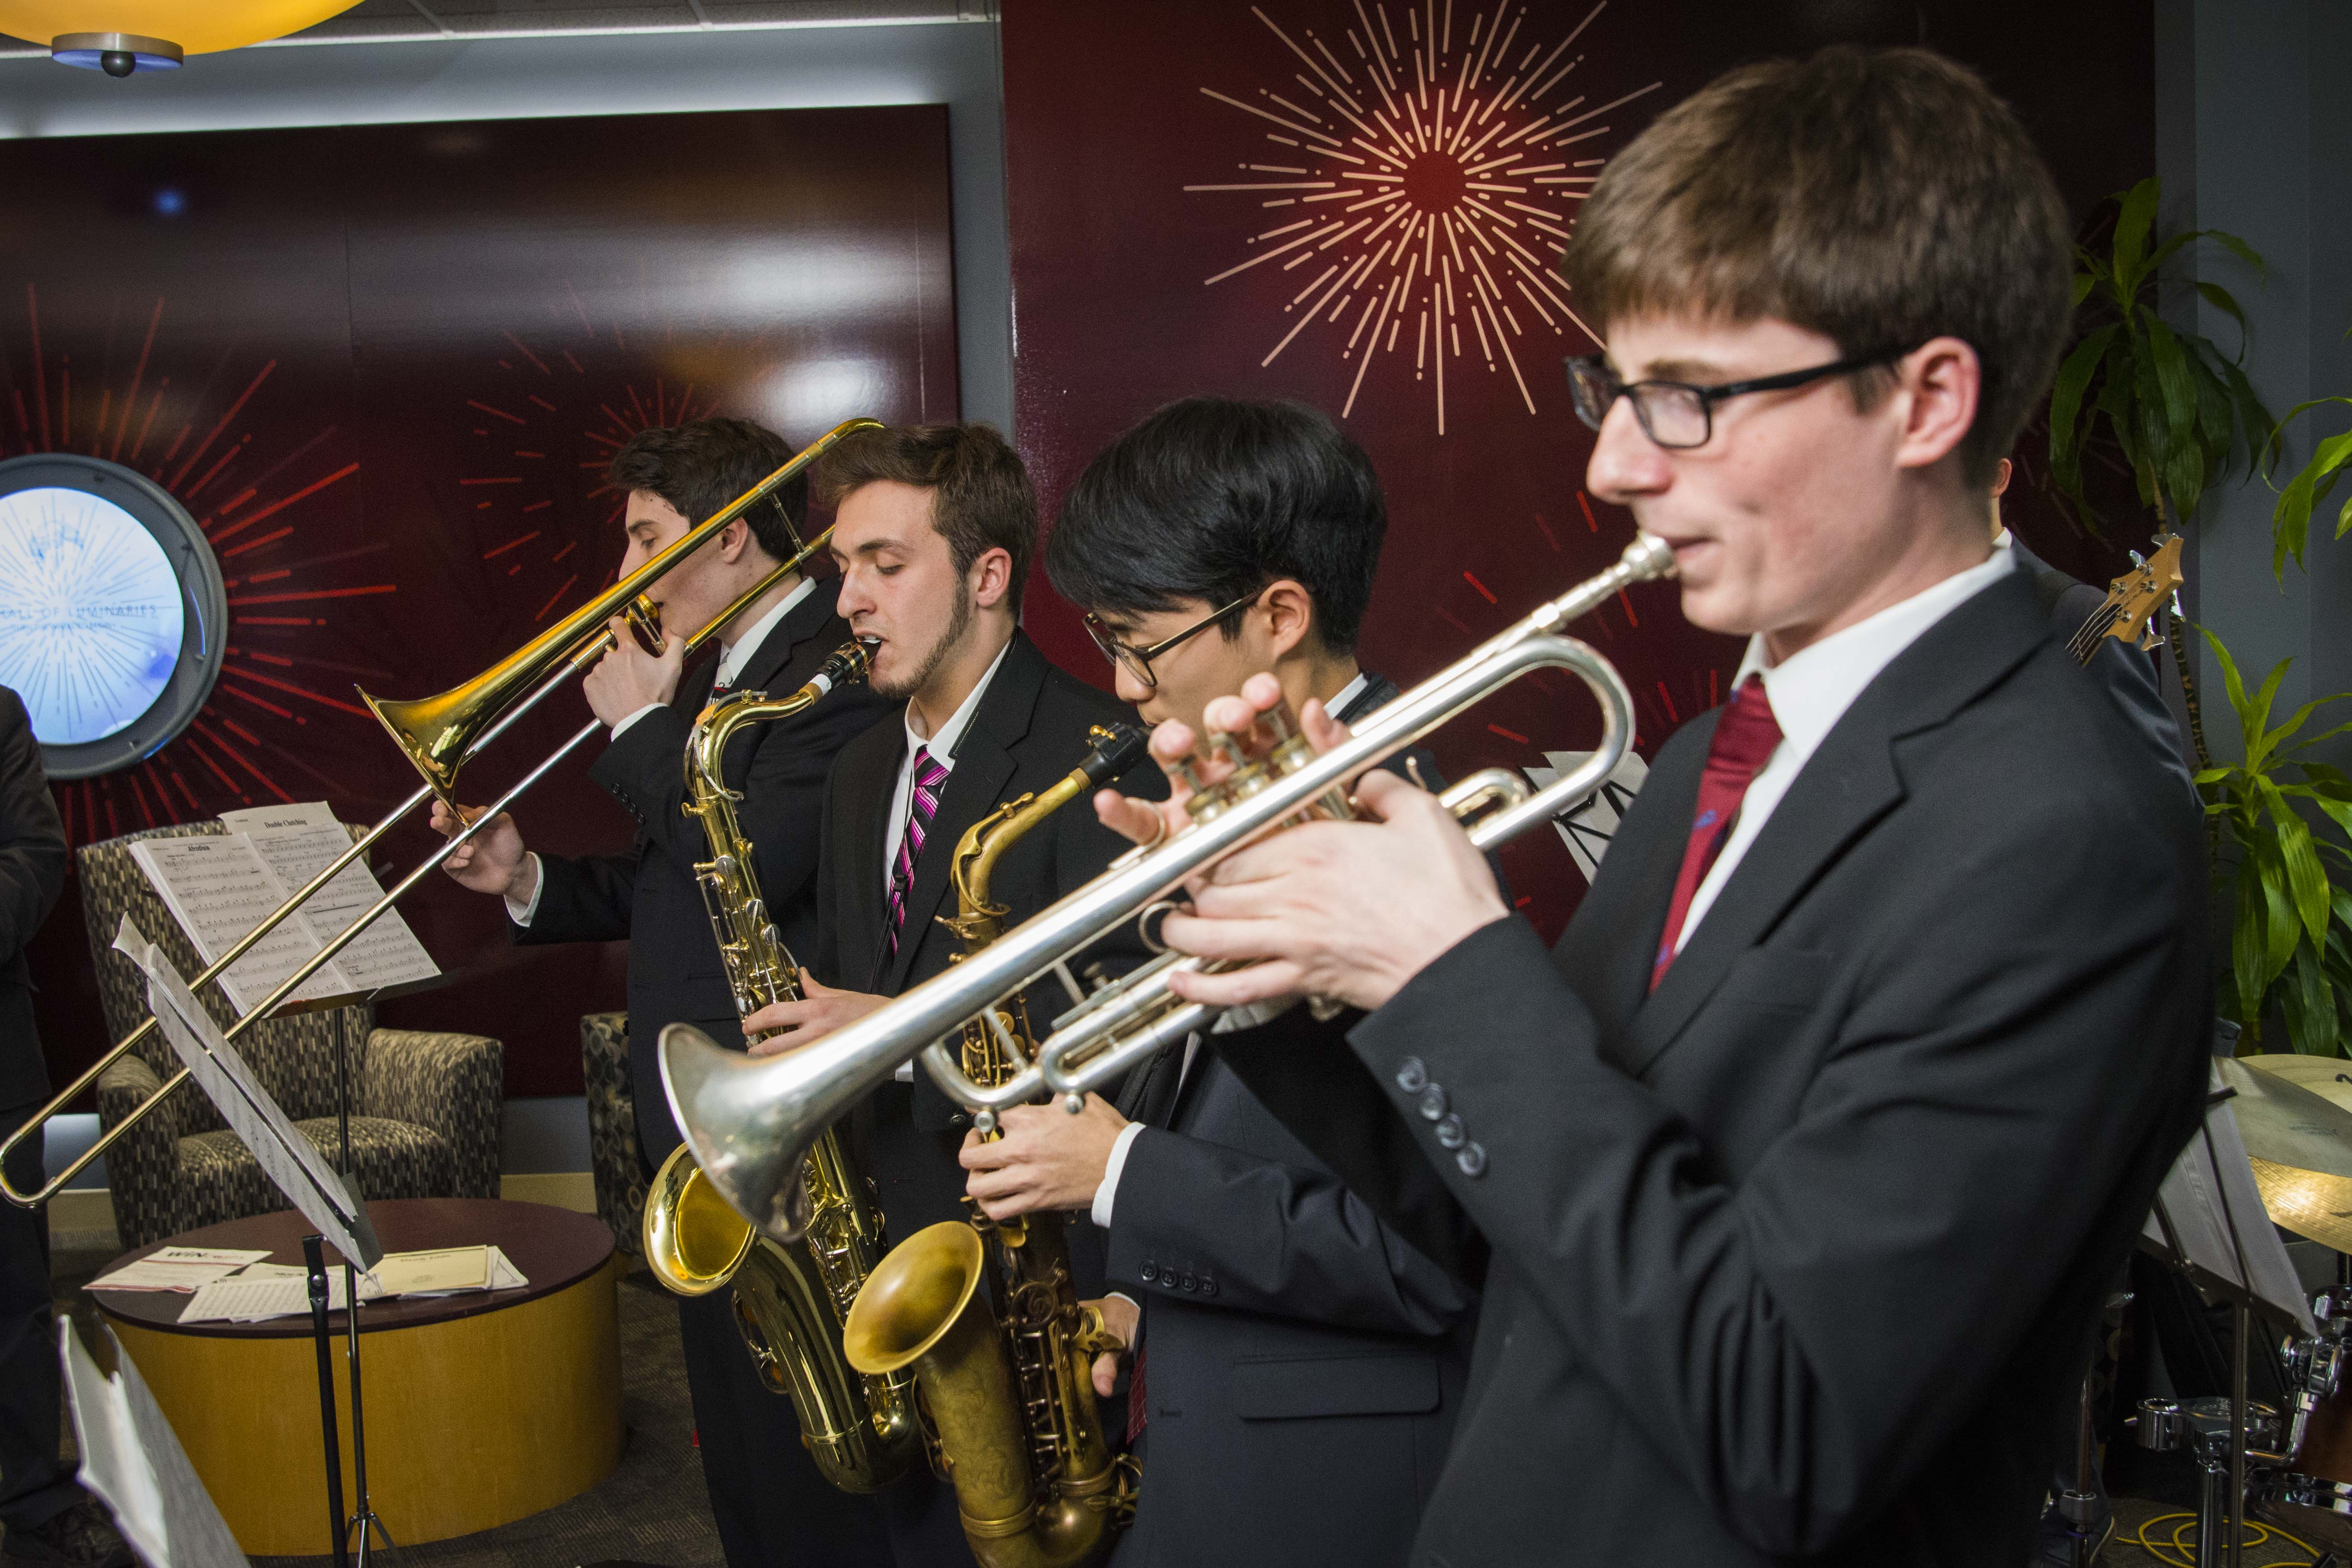 Dressed in formal attire, students play instruments during an event in the Odeum.